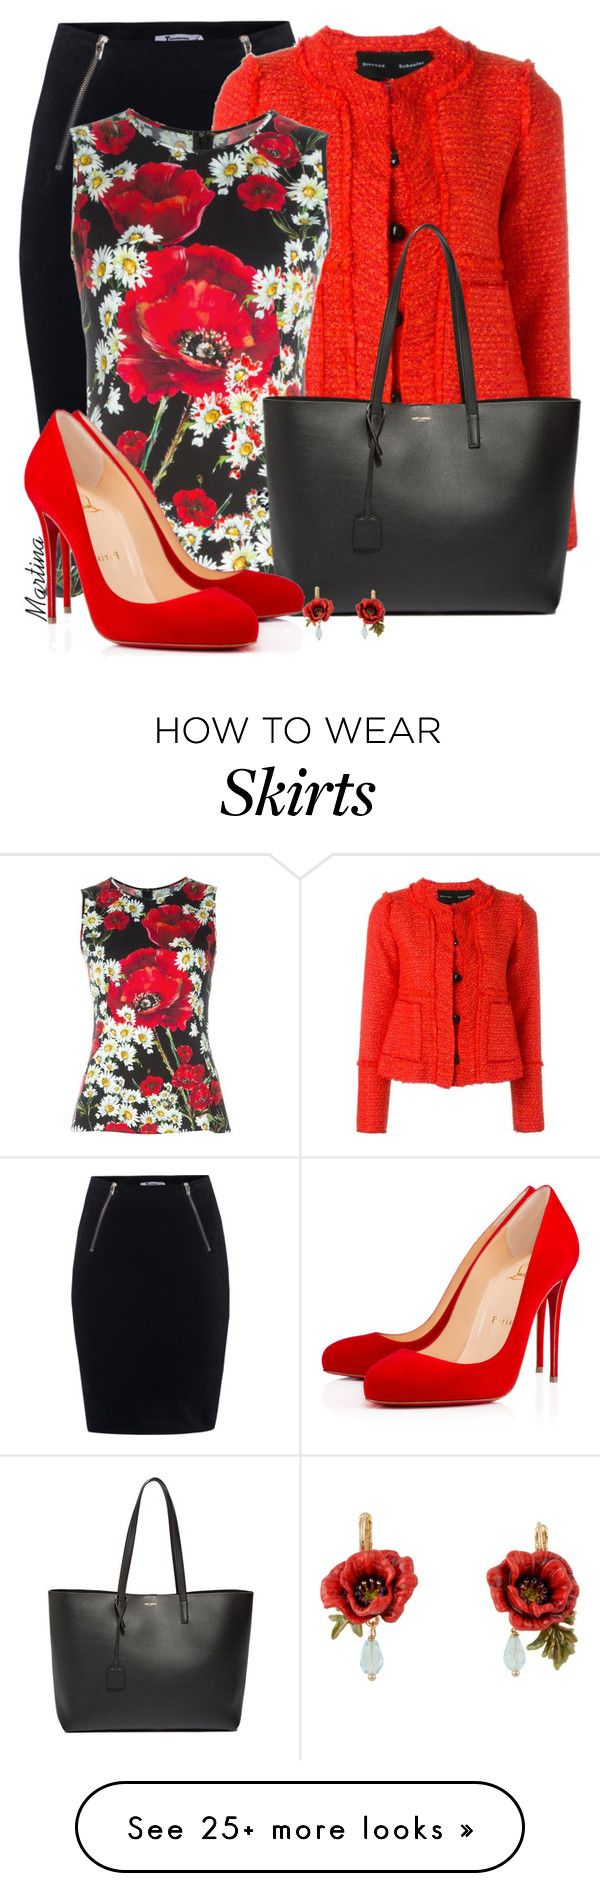 """Untitled #2399"" by martina-cciv on Polyvore featuring T By Alexander Wang, Proenza Schouler, Dolce&Gabbana, Yves Saint Laurent, Christian Louboutin, women's clothing, women, female, woman and misses"